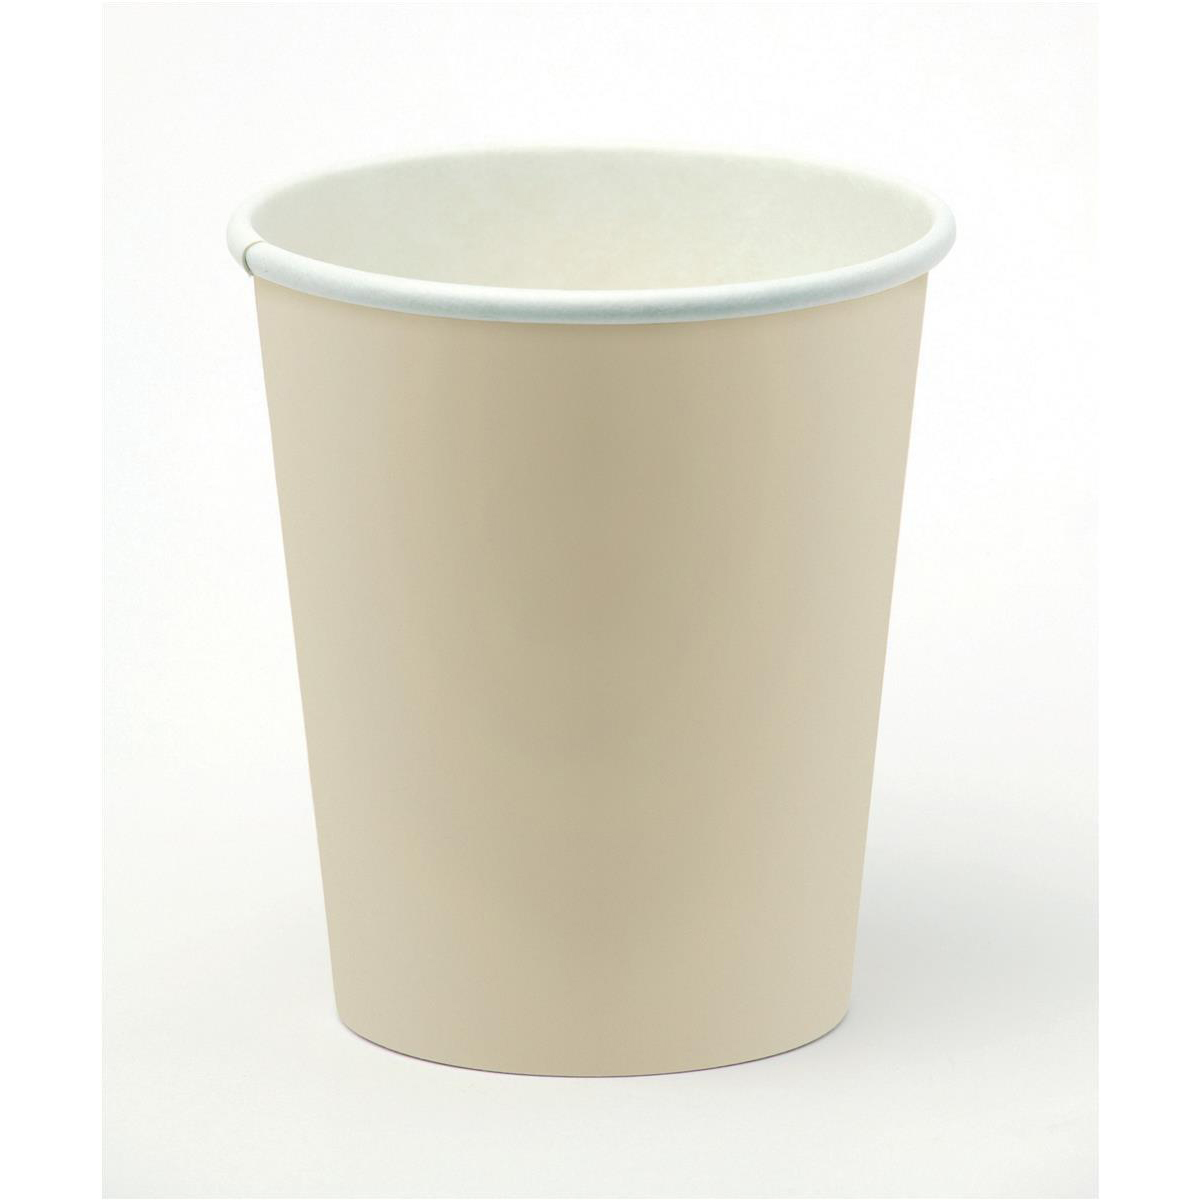 Disposable Cups & Accessories Paper Cup for Hot Drinks 8oz 236ml Varied Design Ref 01156 Pack 50